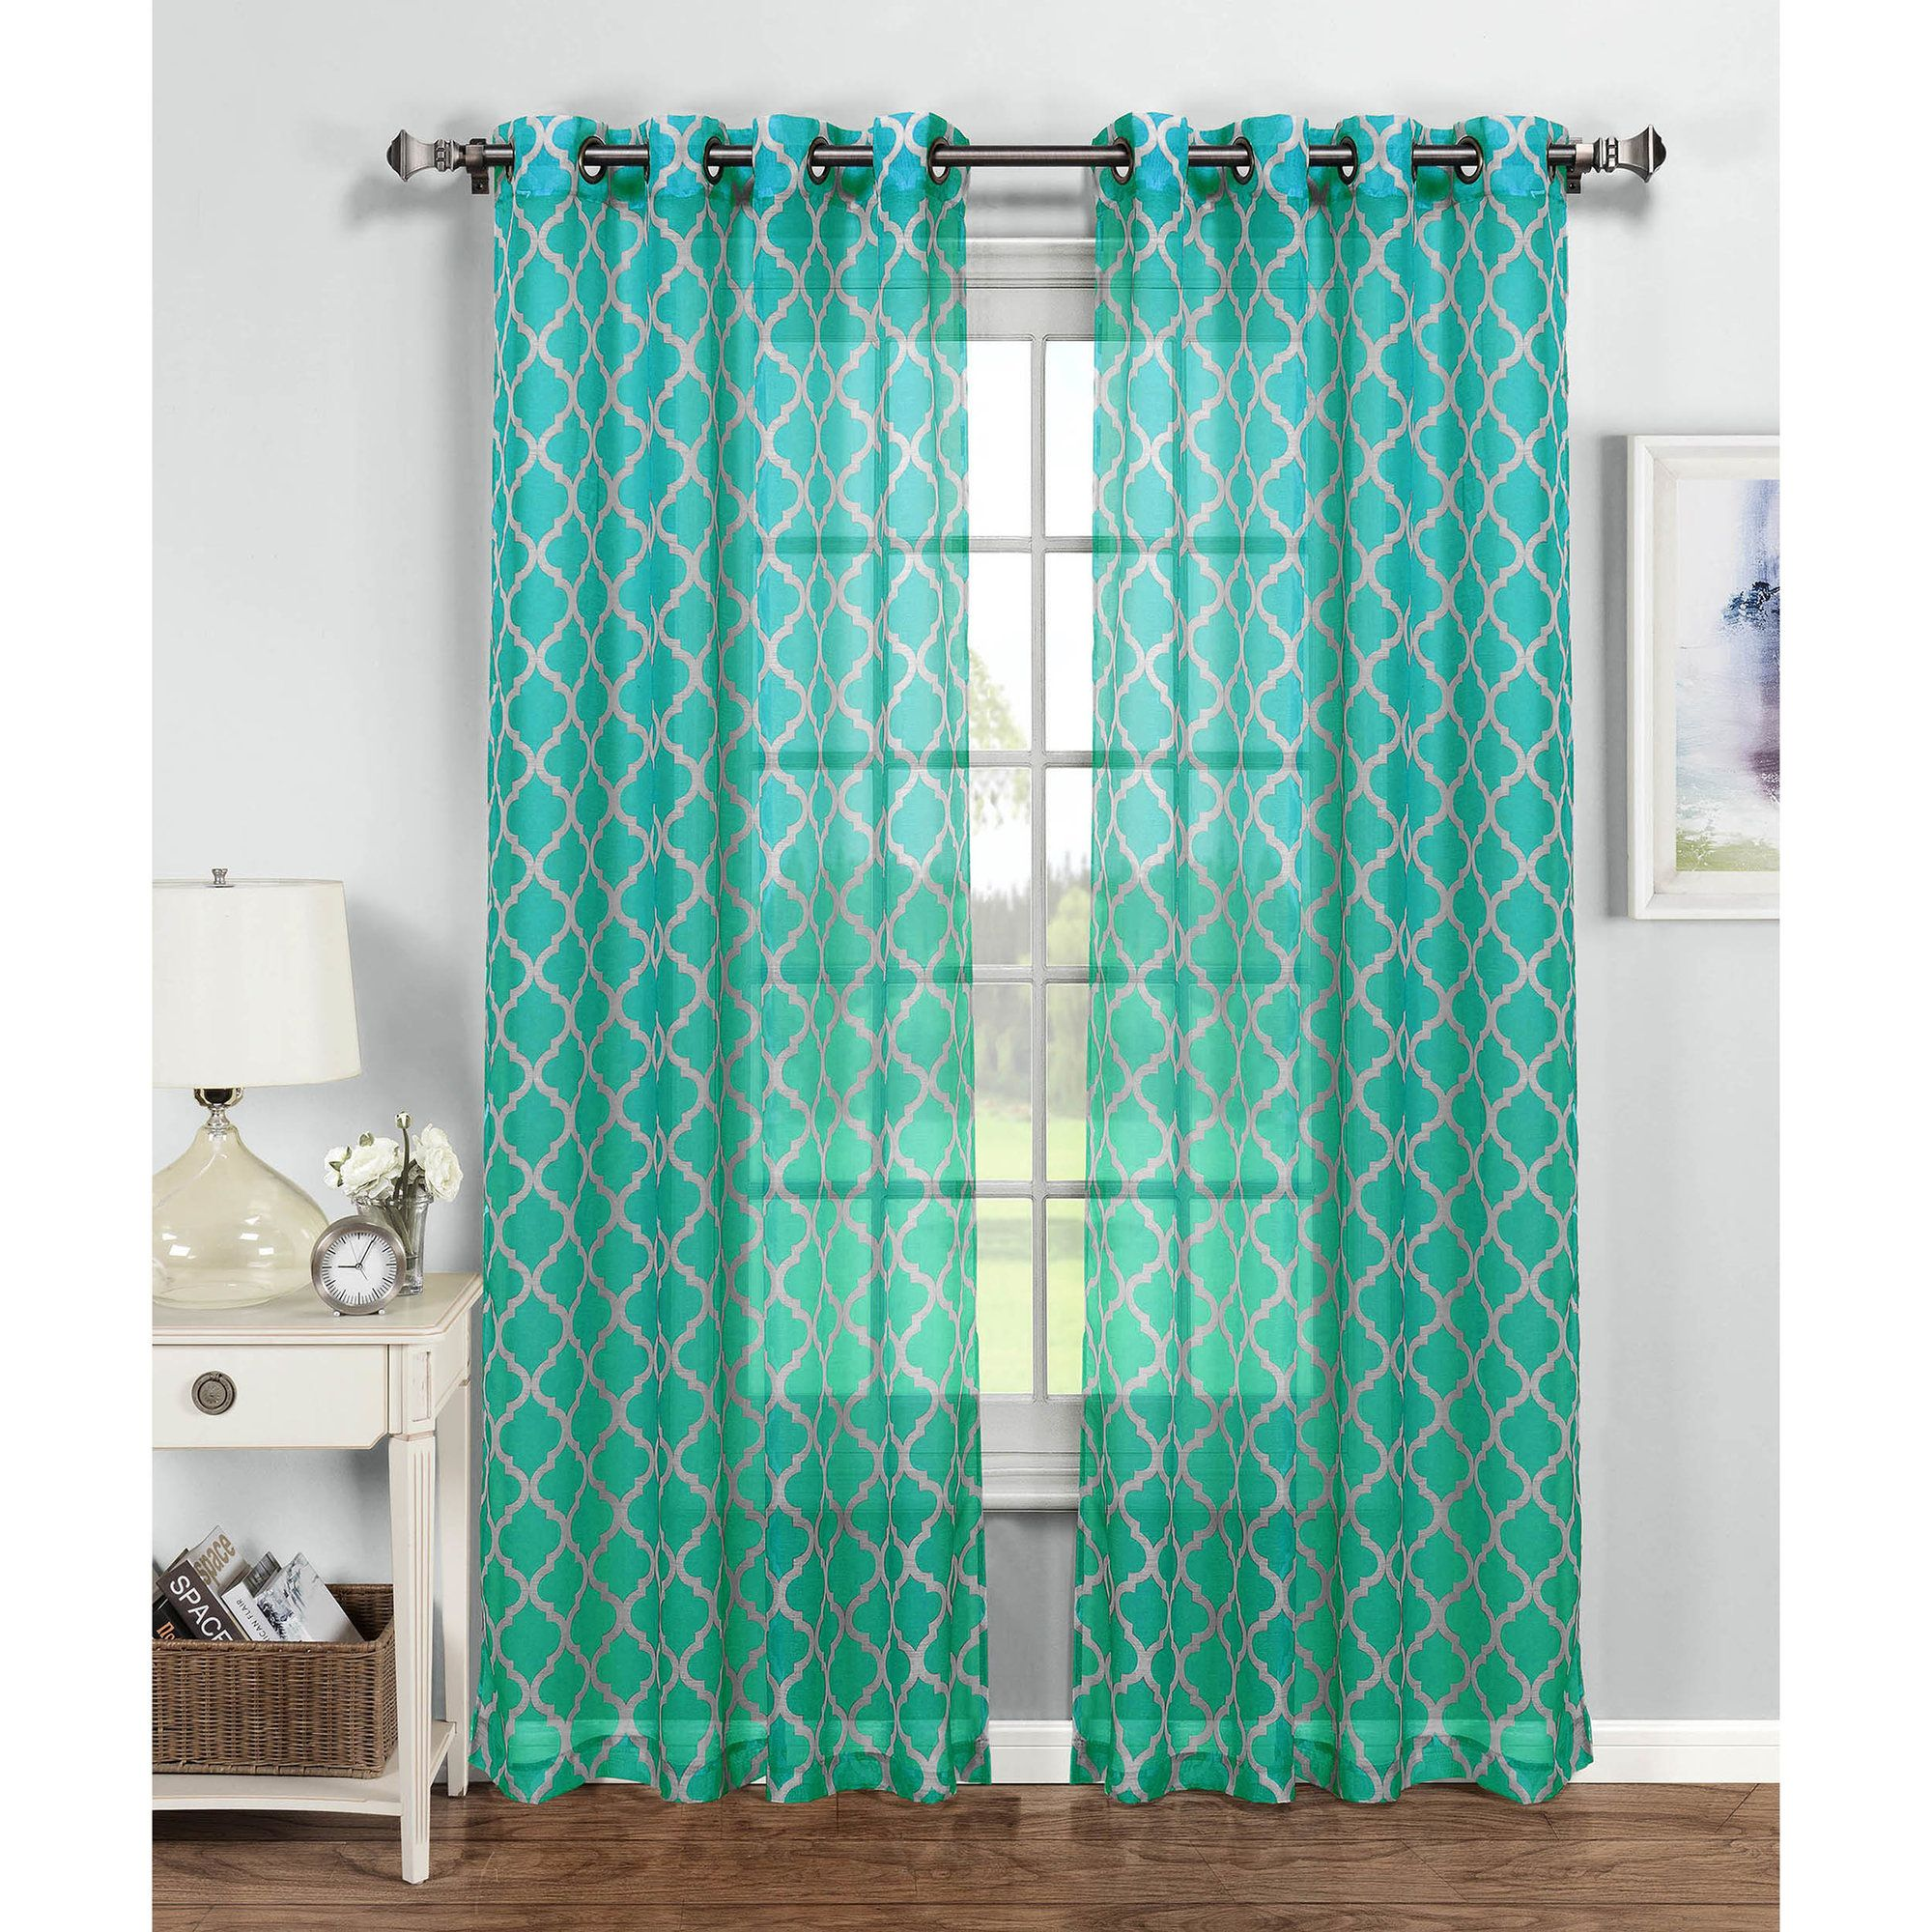 Window Elements Sheer Quatrafoil Printed Extra Wide 54 In W X 84 L Grommet Curtain Panel Turquoise White